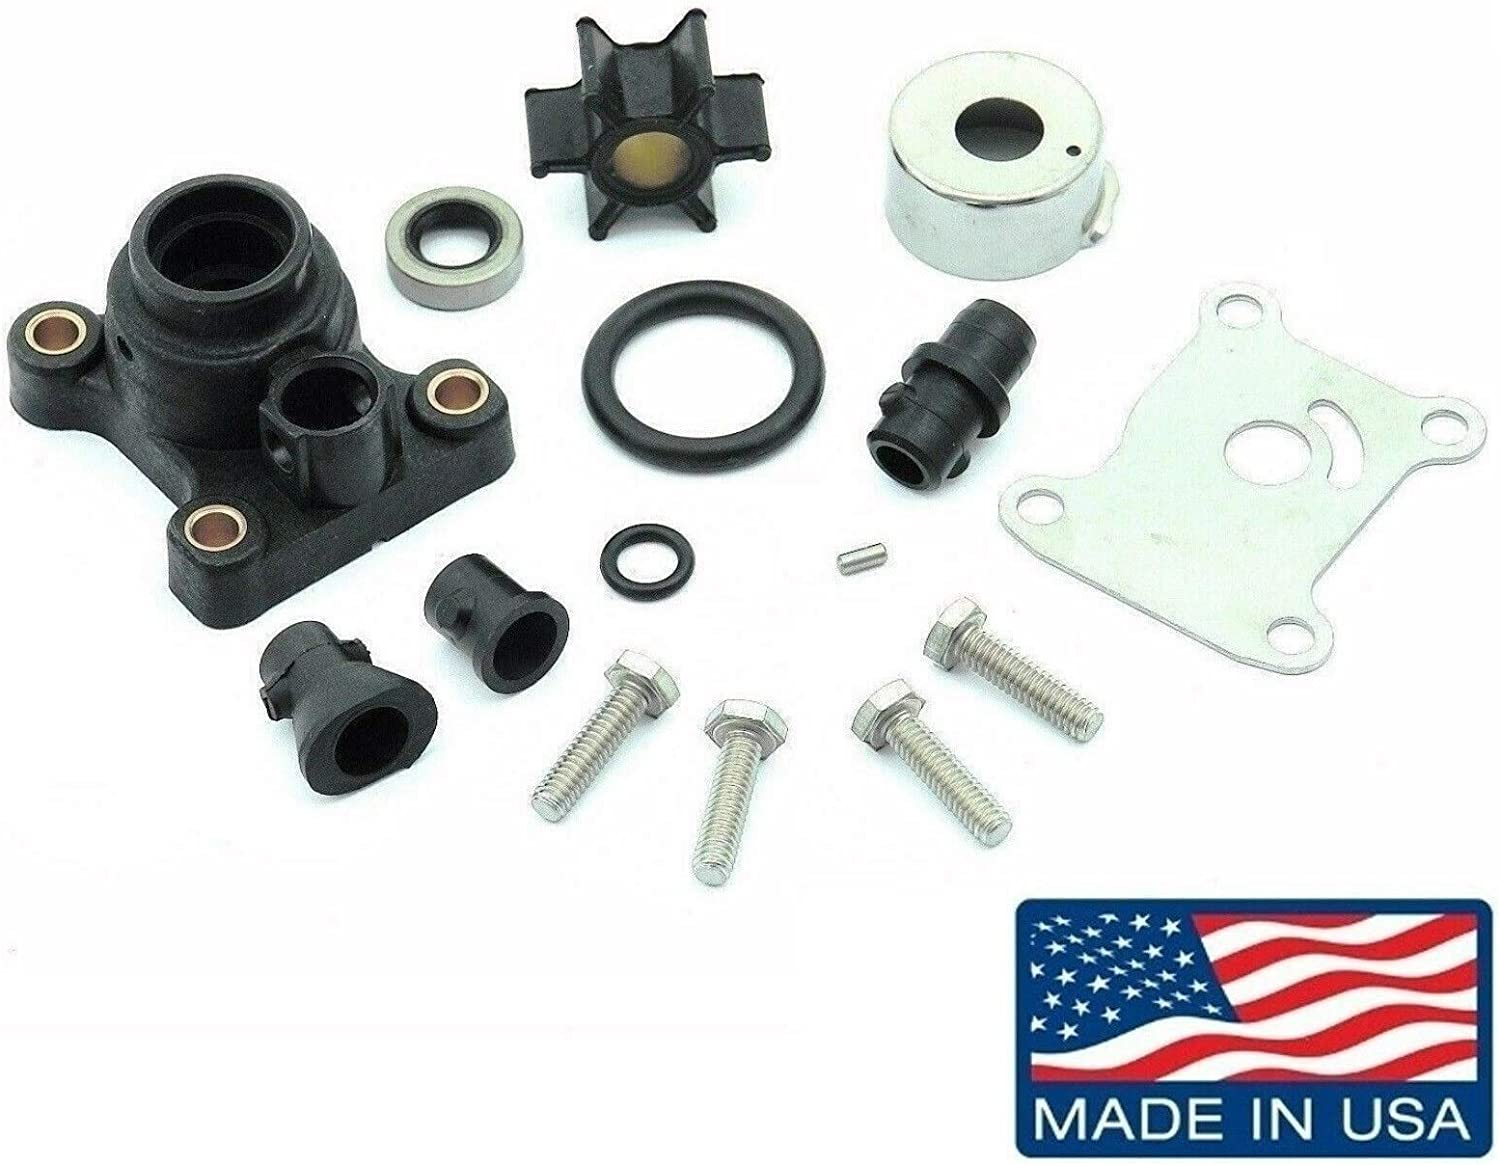 EMP Water Pump Kit for Johnson Evinrude 9.9, 15 Hp 2 Stroke (1974-1996) & 9.9, 15 Hp 4 Stroke (1995-2001) Replaces 18-3327 394711 (Made in USA) Read Item Description for Applications